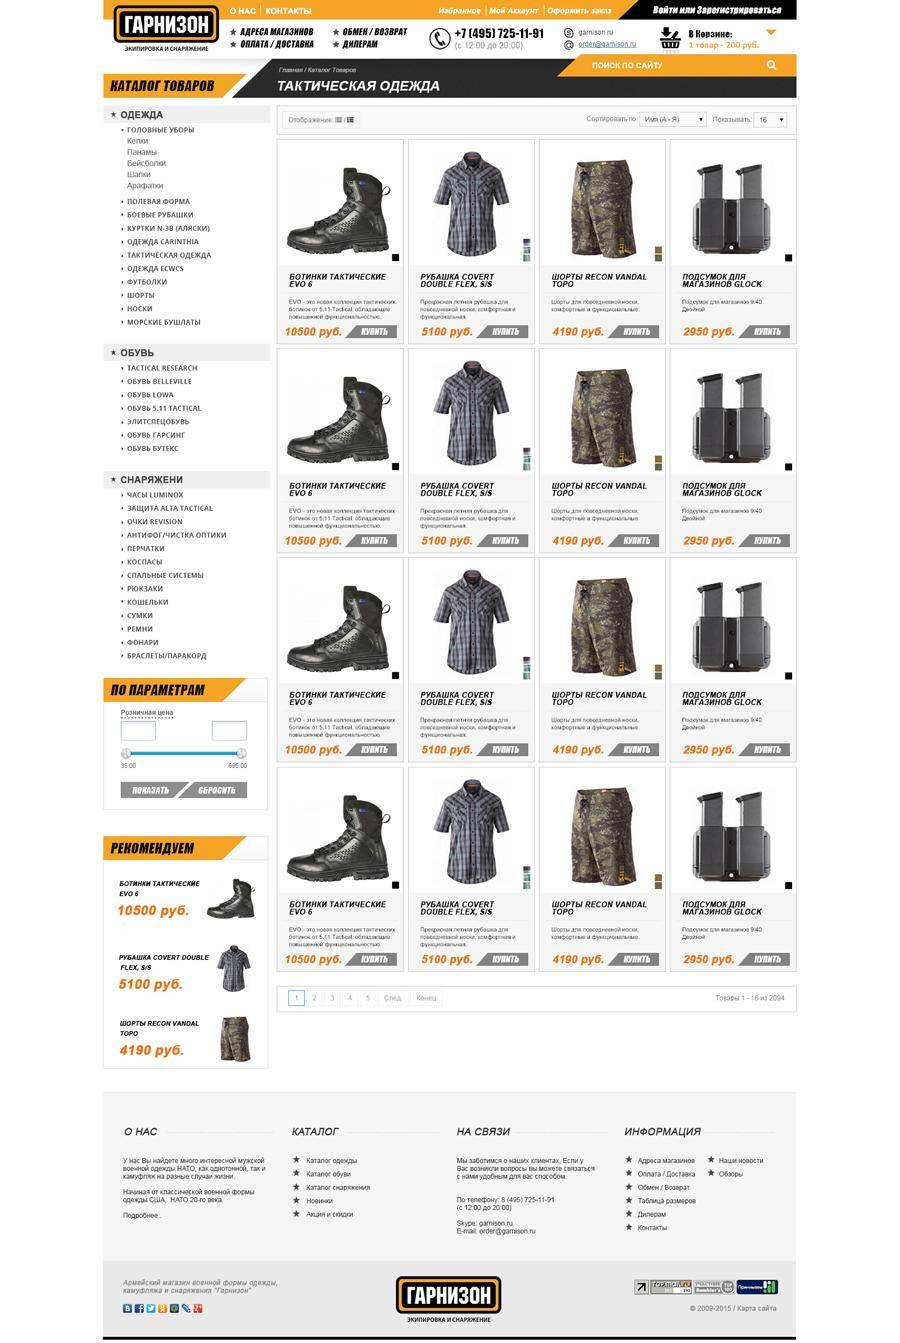 Design online store military clothing